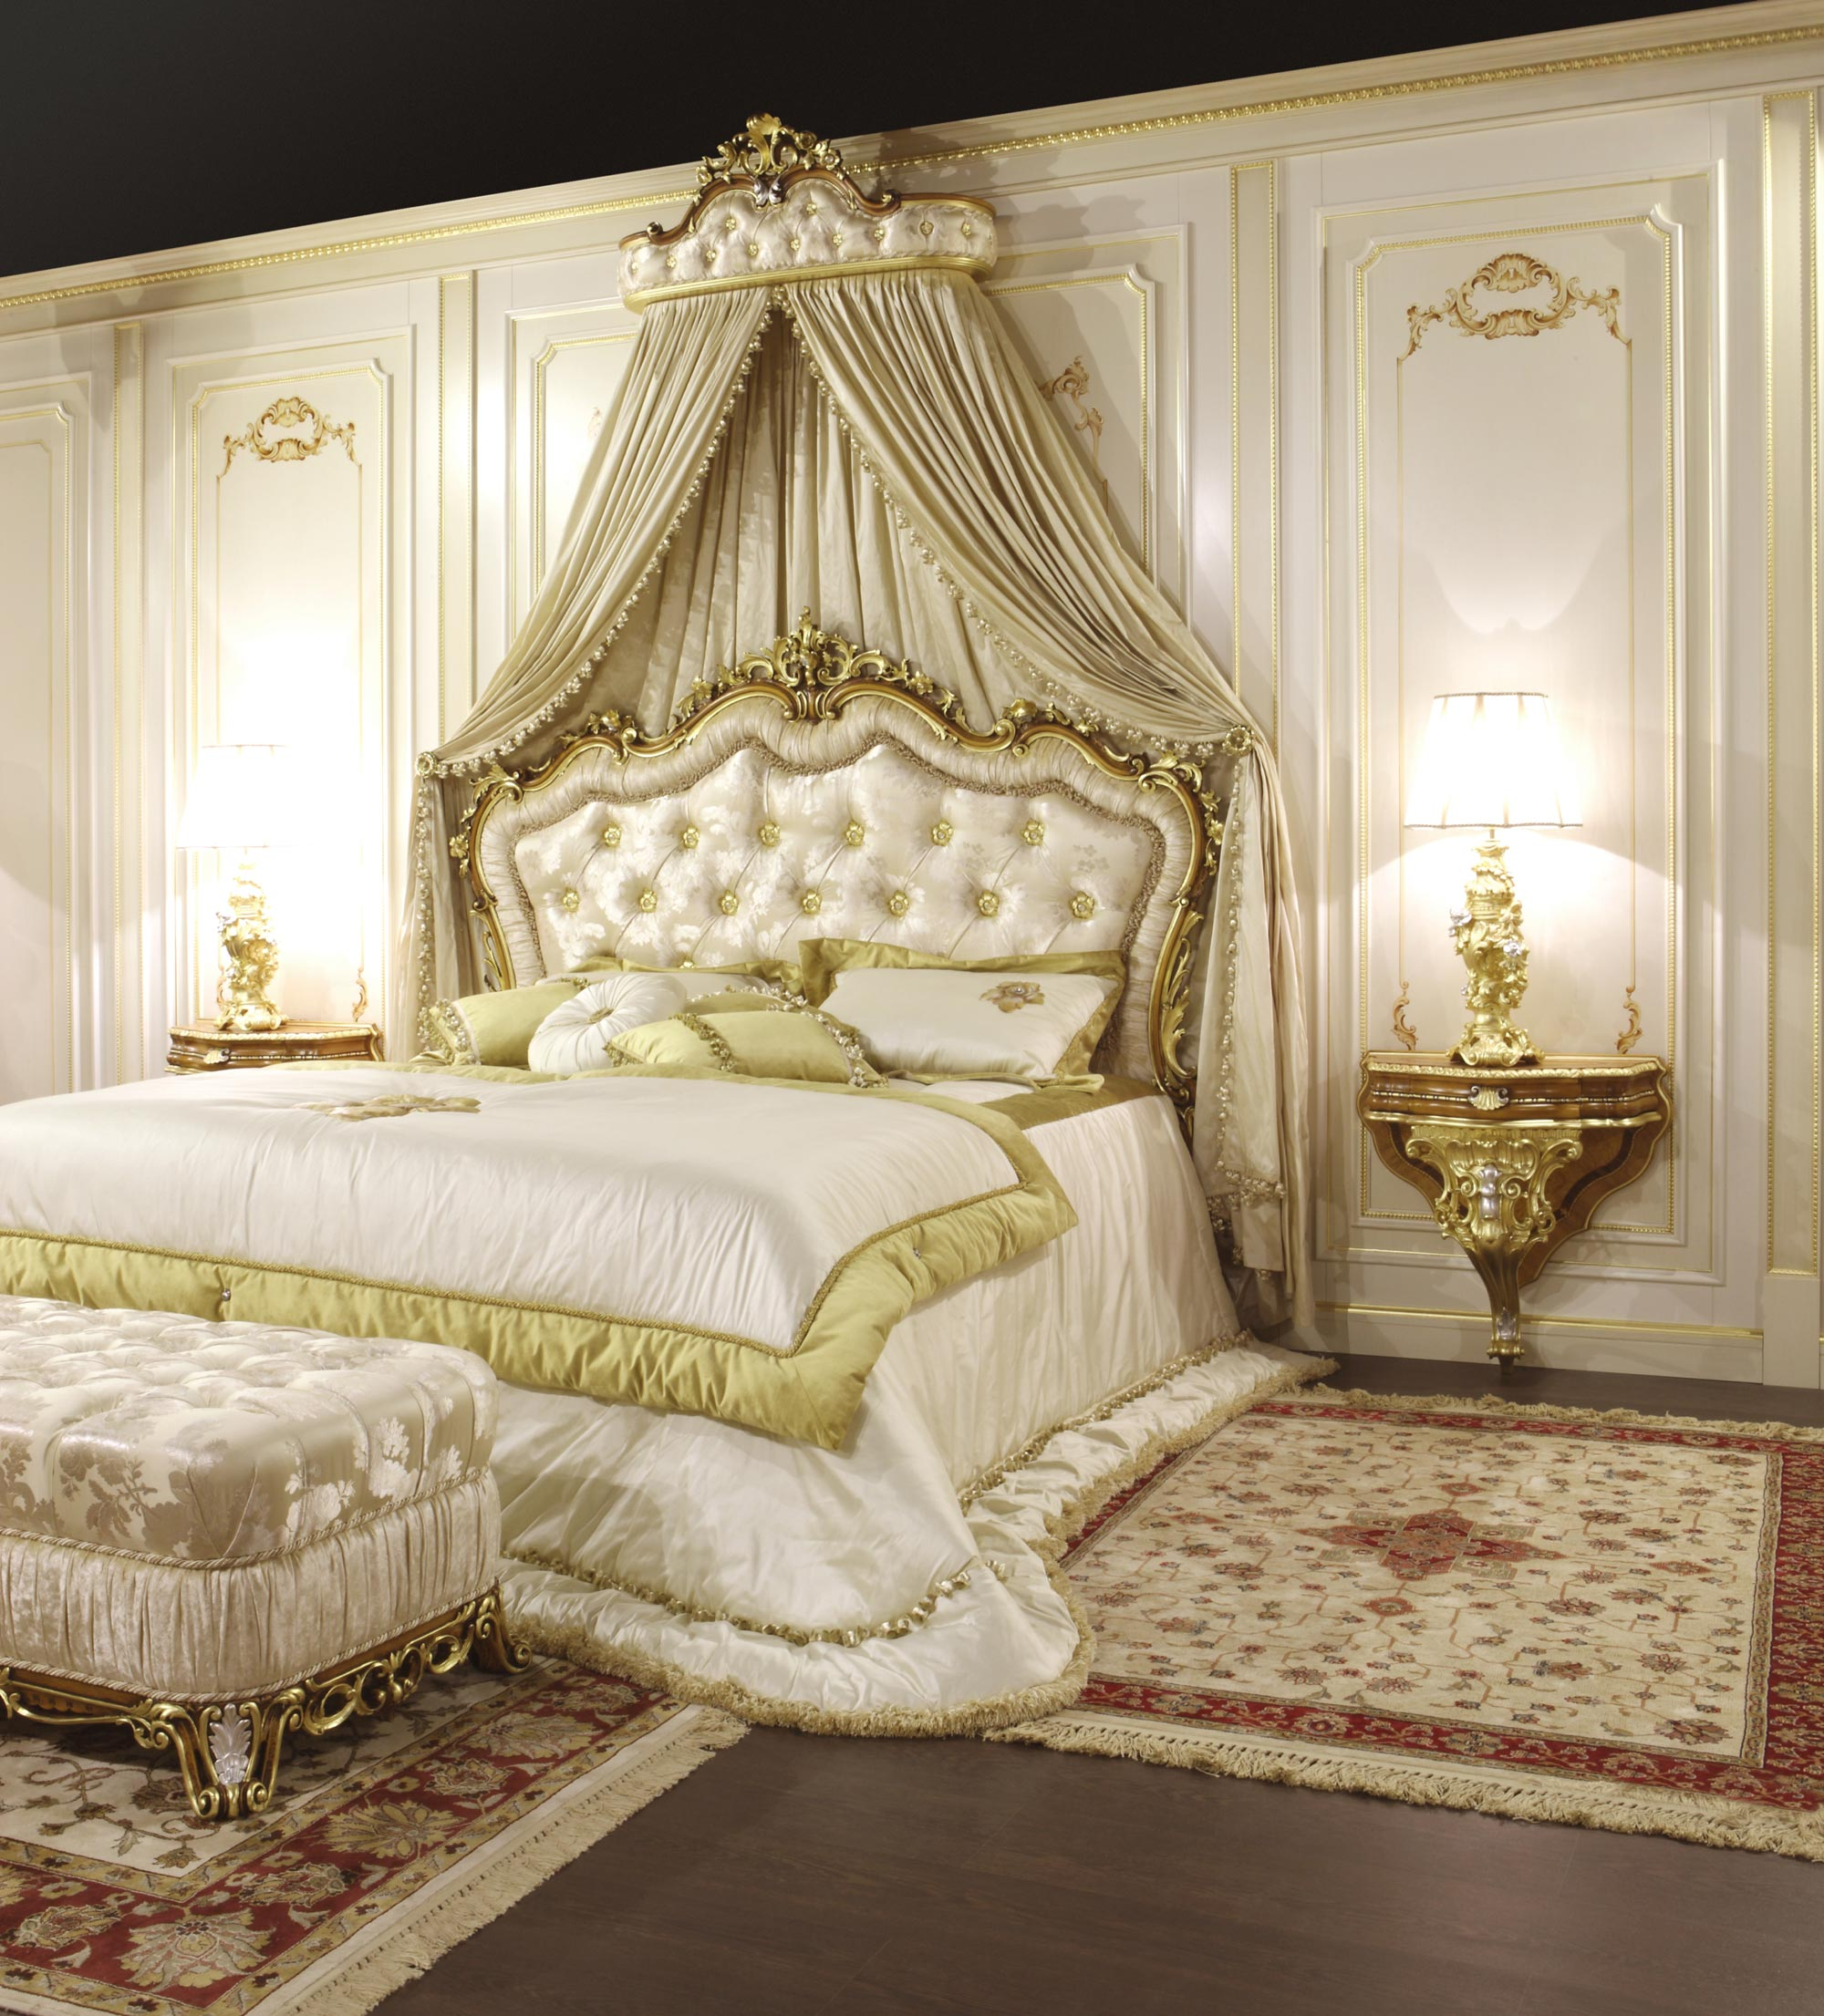 Baroque Bed In Classic Style Art 2013 Vimercati Classic